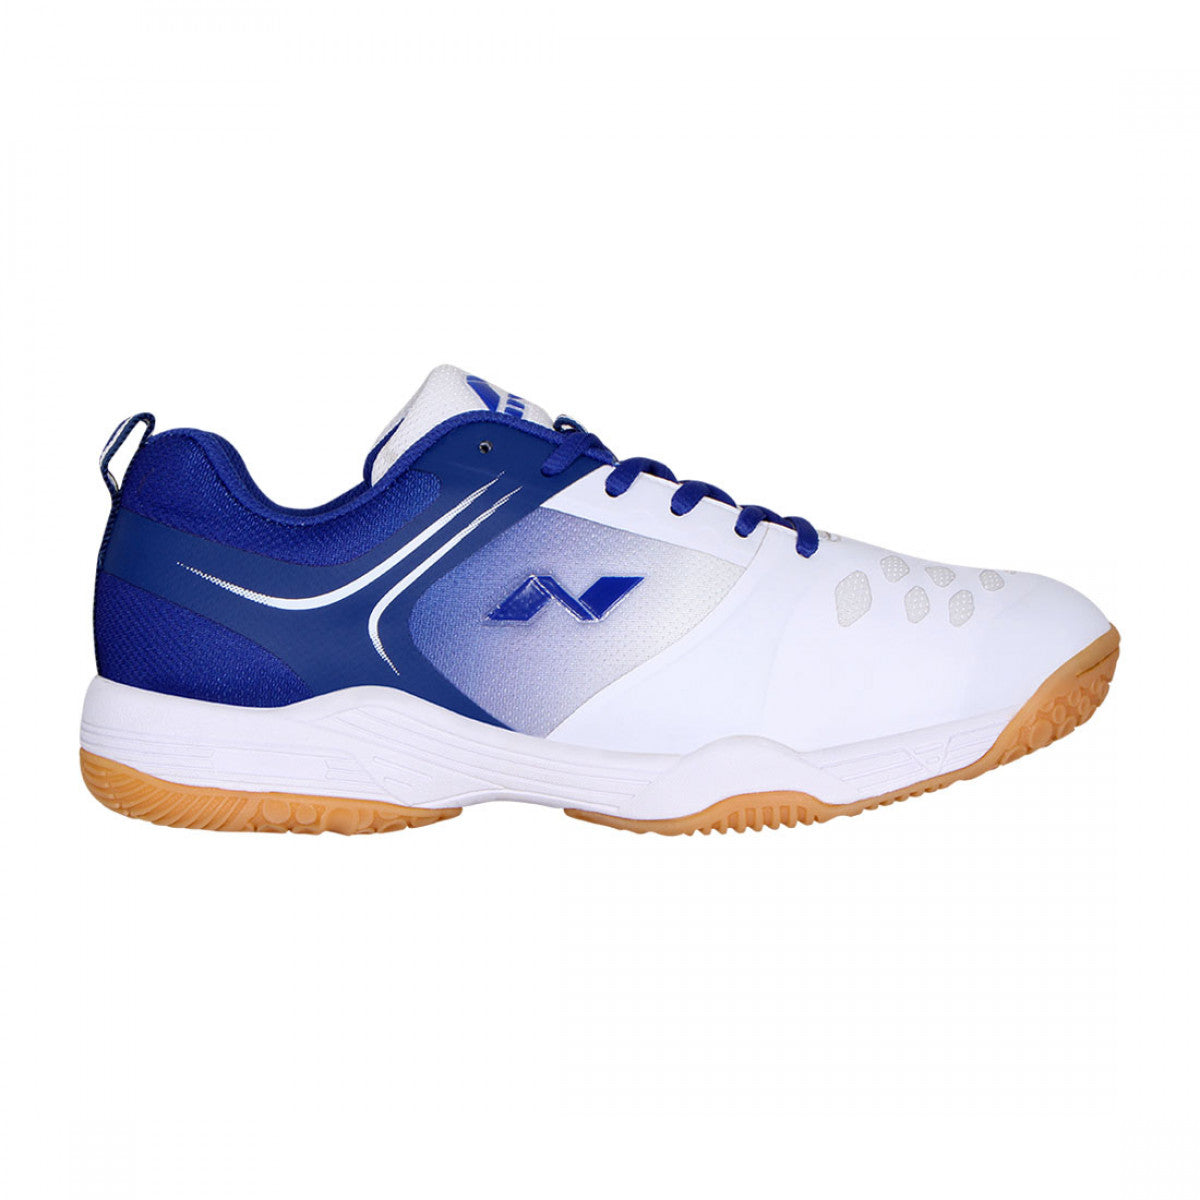 NIVIA HY-COURT 2.0 Badminton Shoes for